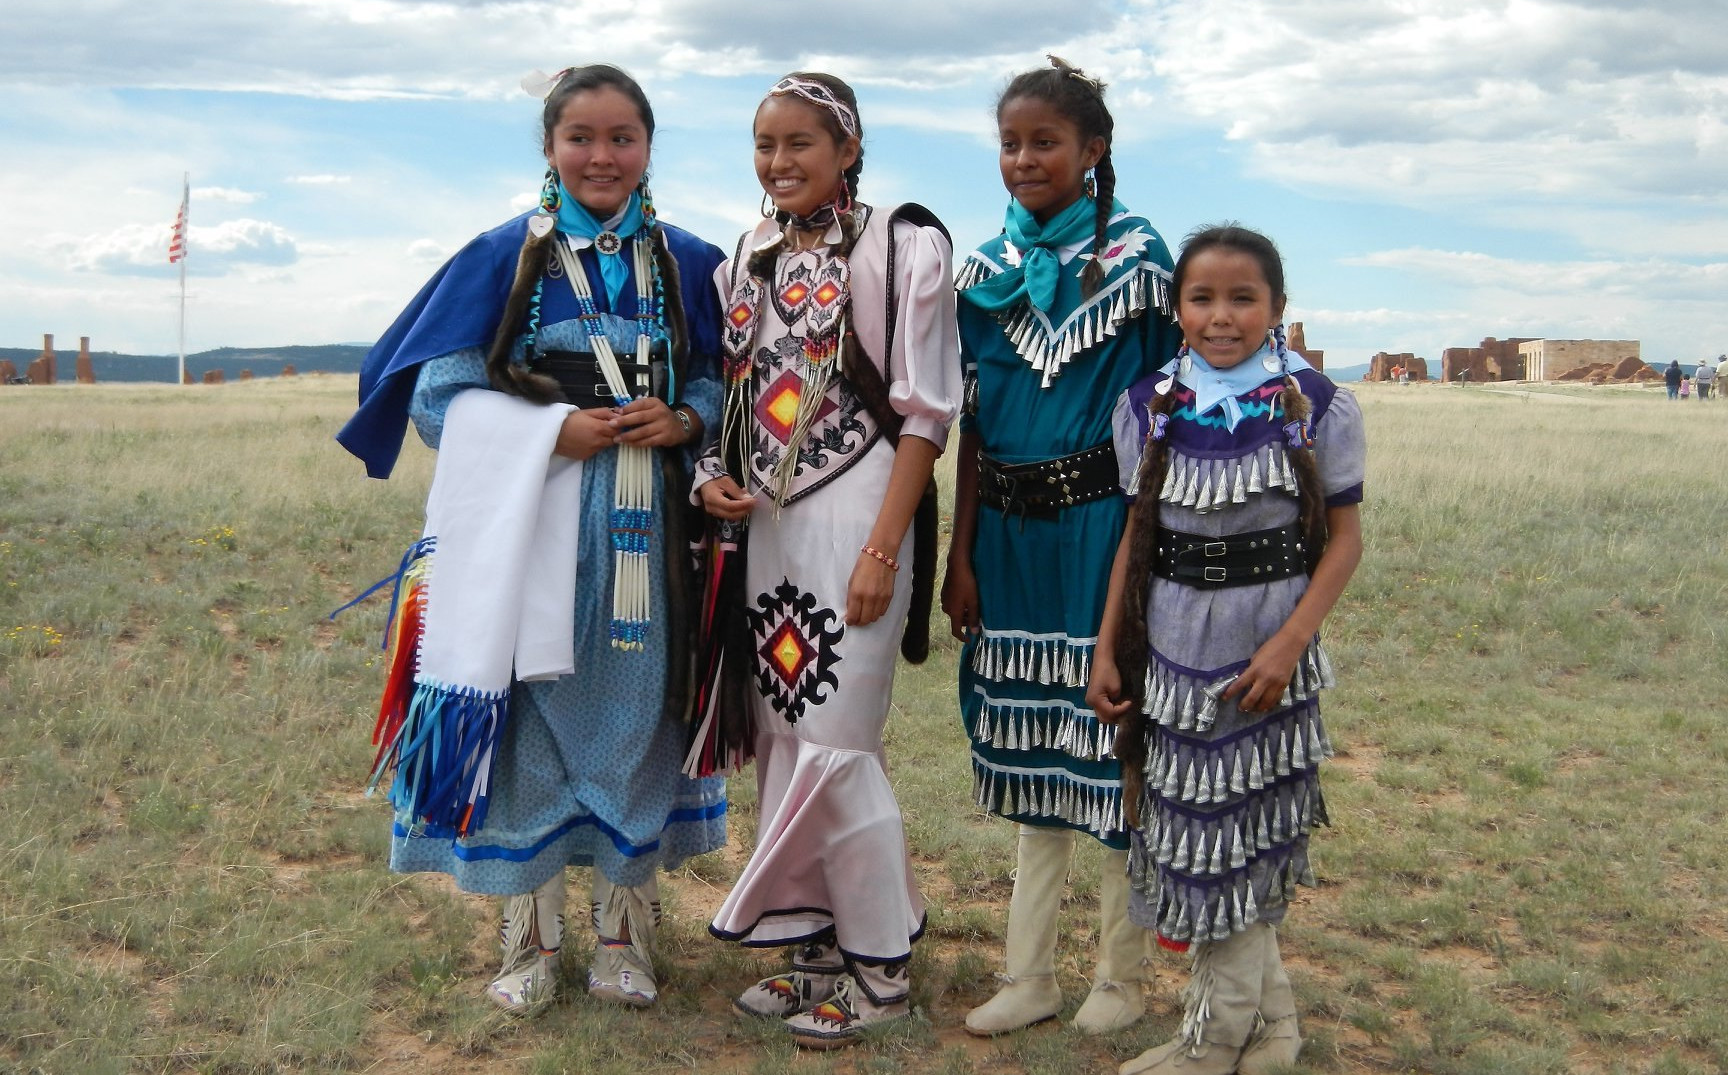 Four young girls in traditional Native American clothes pose together in grassy field.